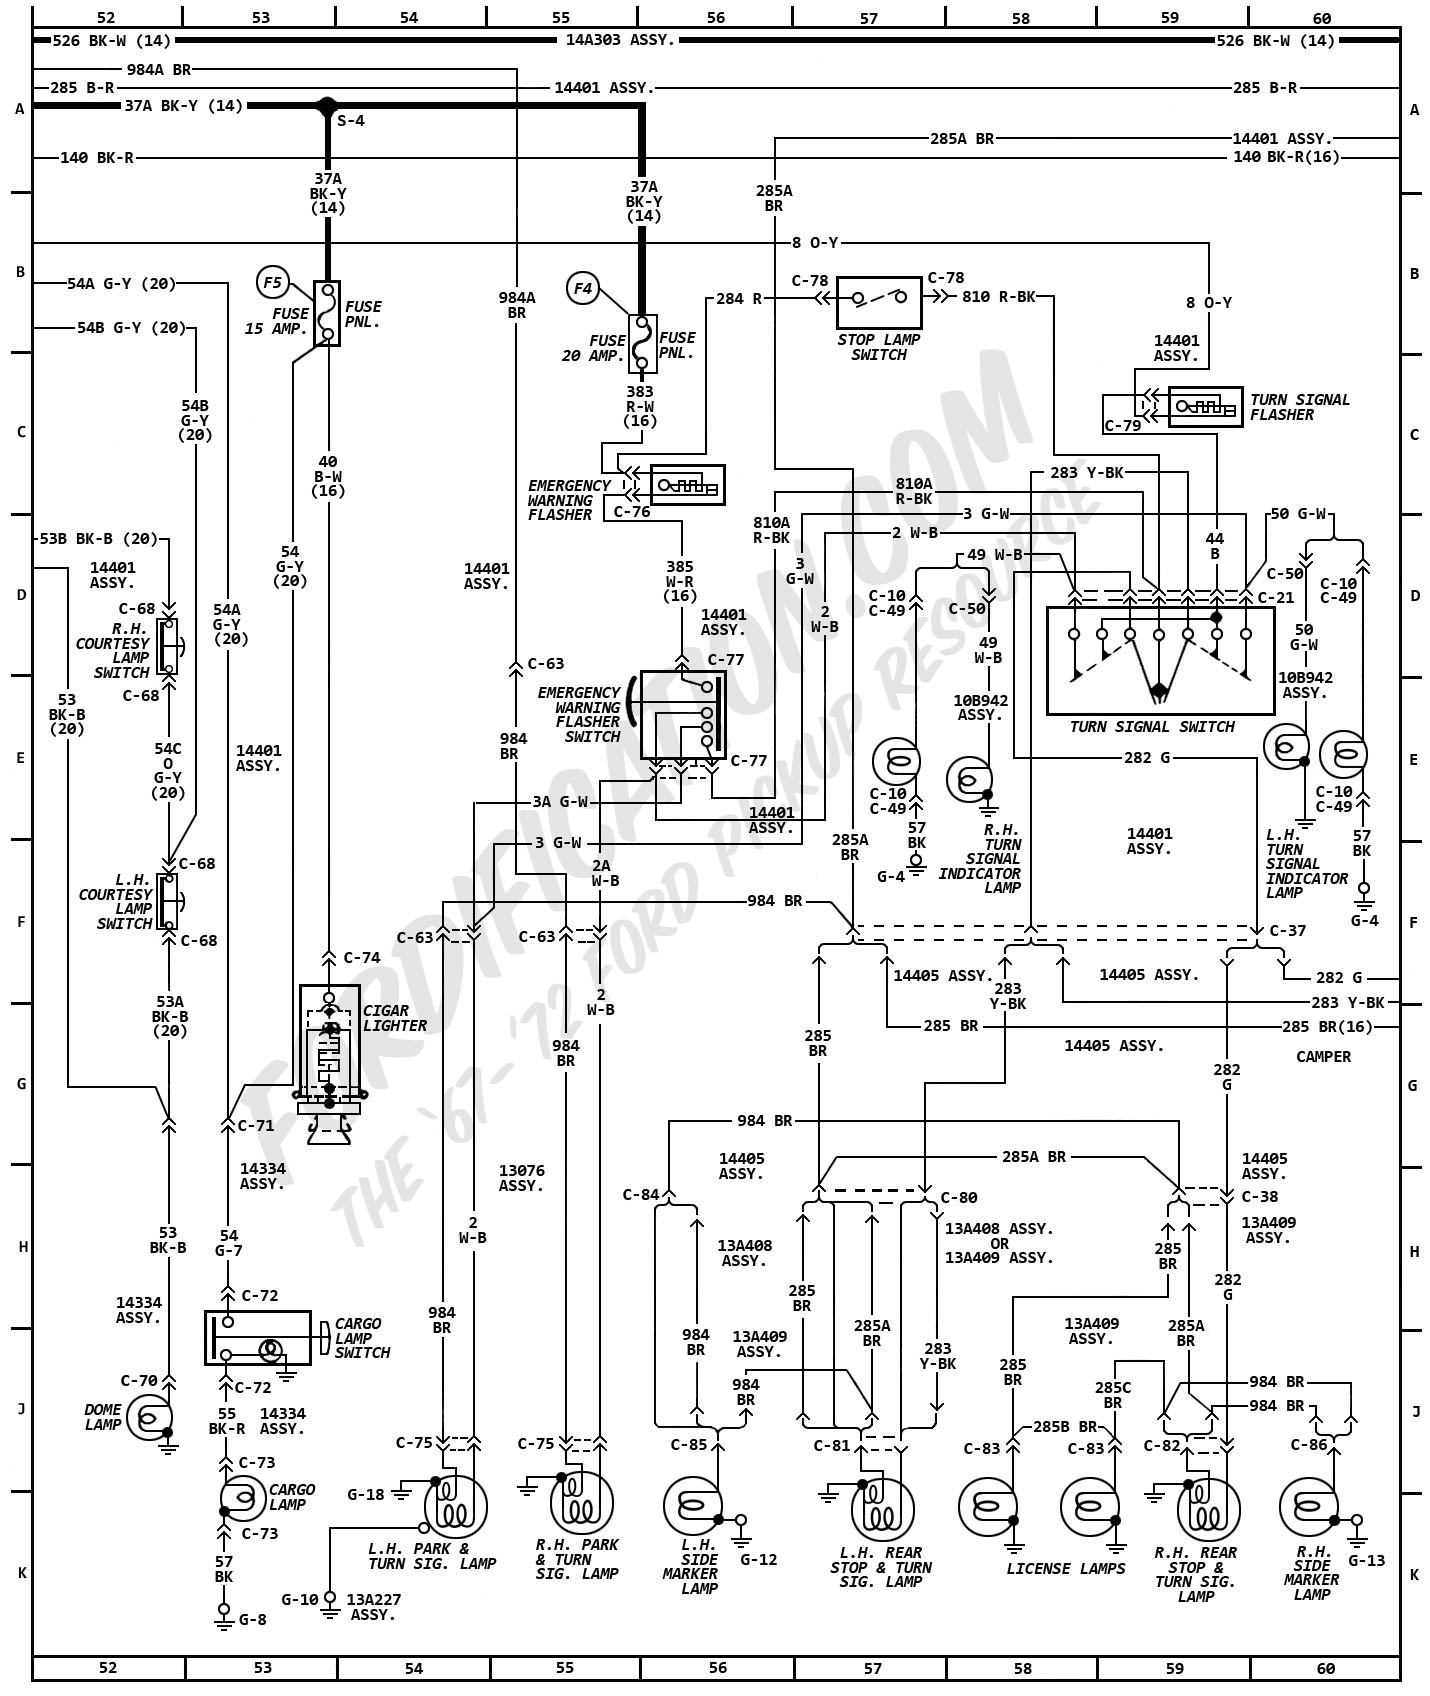 fordification wiring diagram 1967 1972 ford trucks wiring diagram rh hg4 co 1981 ford f150 wiring diagram 1981 ford f100 alternator wiring diagram